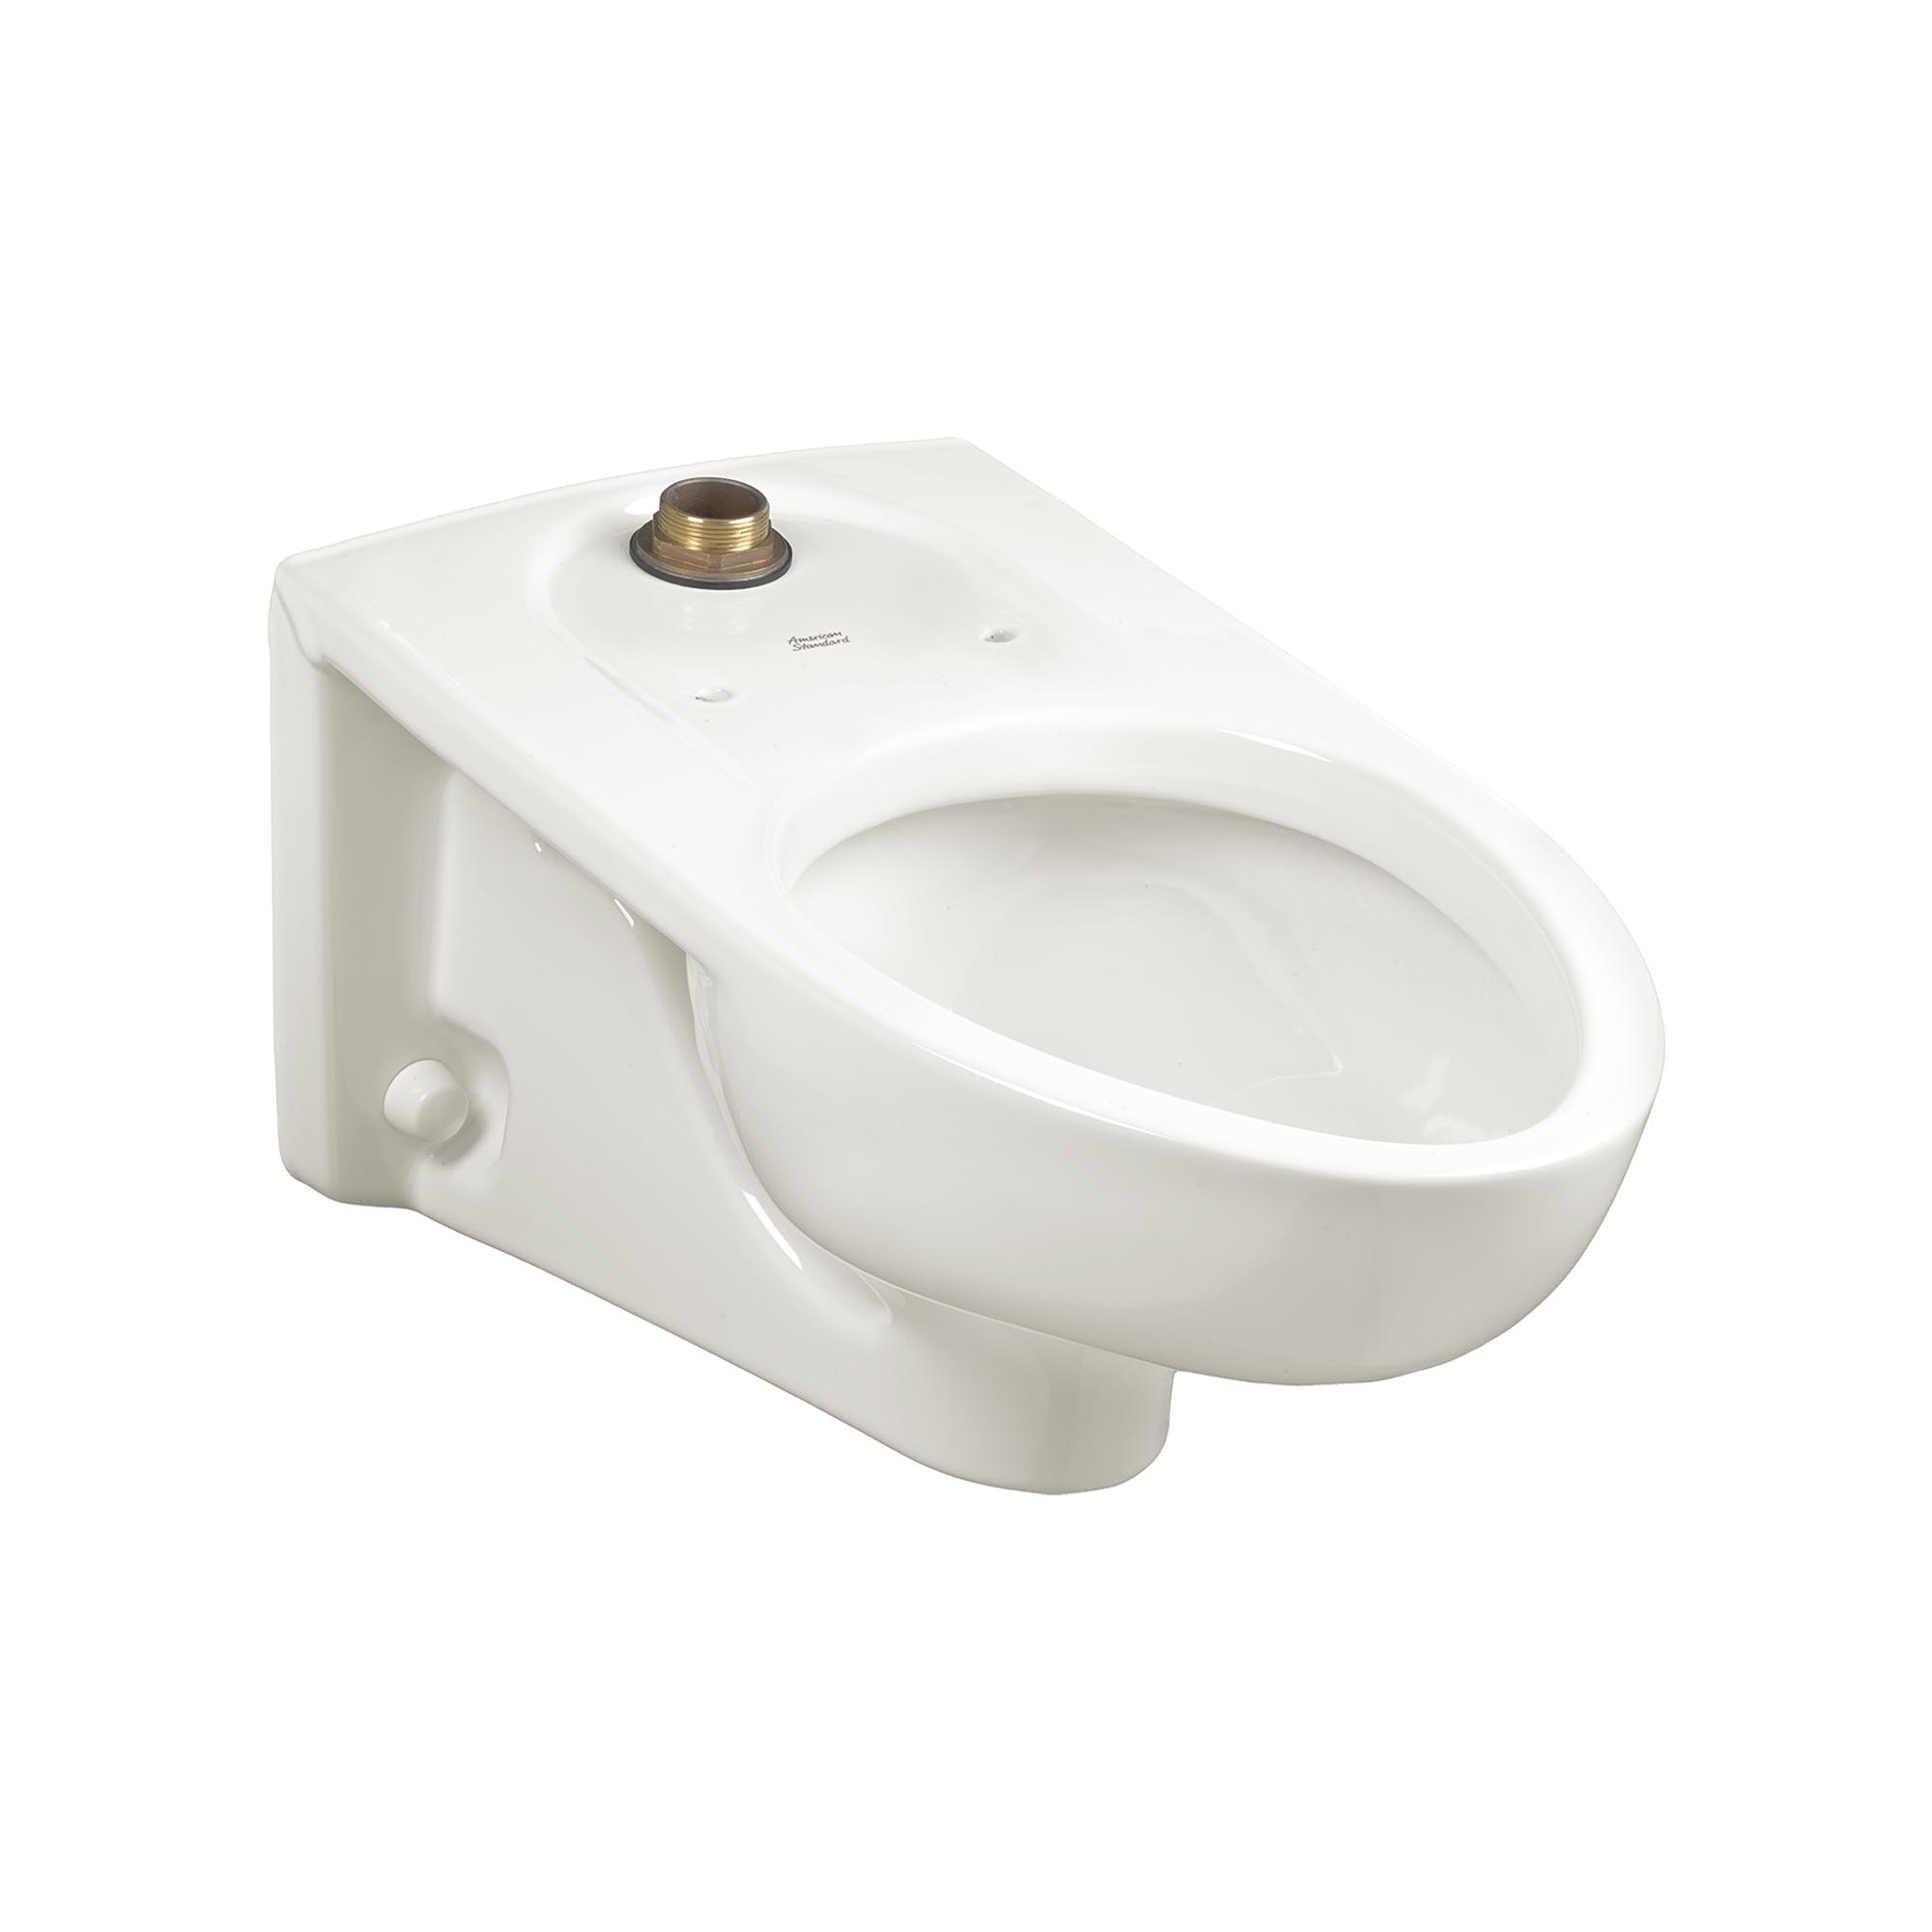 American Standard 2257101.020 Afwall® Millennium™ FloWise® Flushometer Toilet Bowl, Elongated, 10 x 12 in Water Surface, 2-1/8 in Trapway, Import